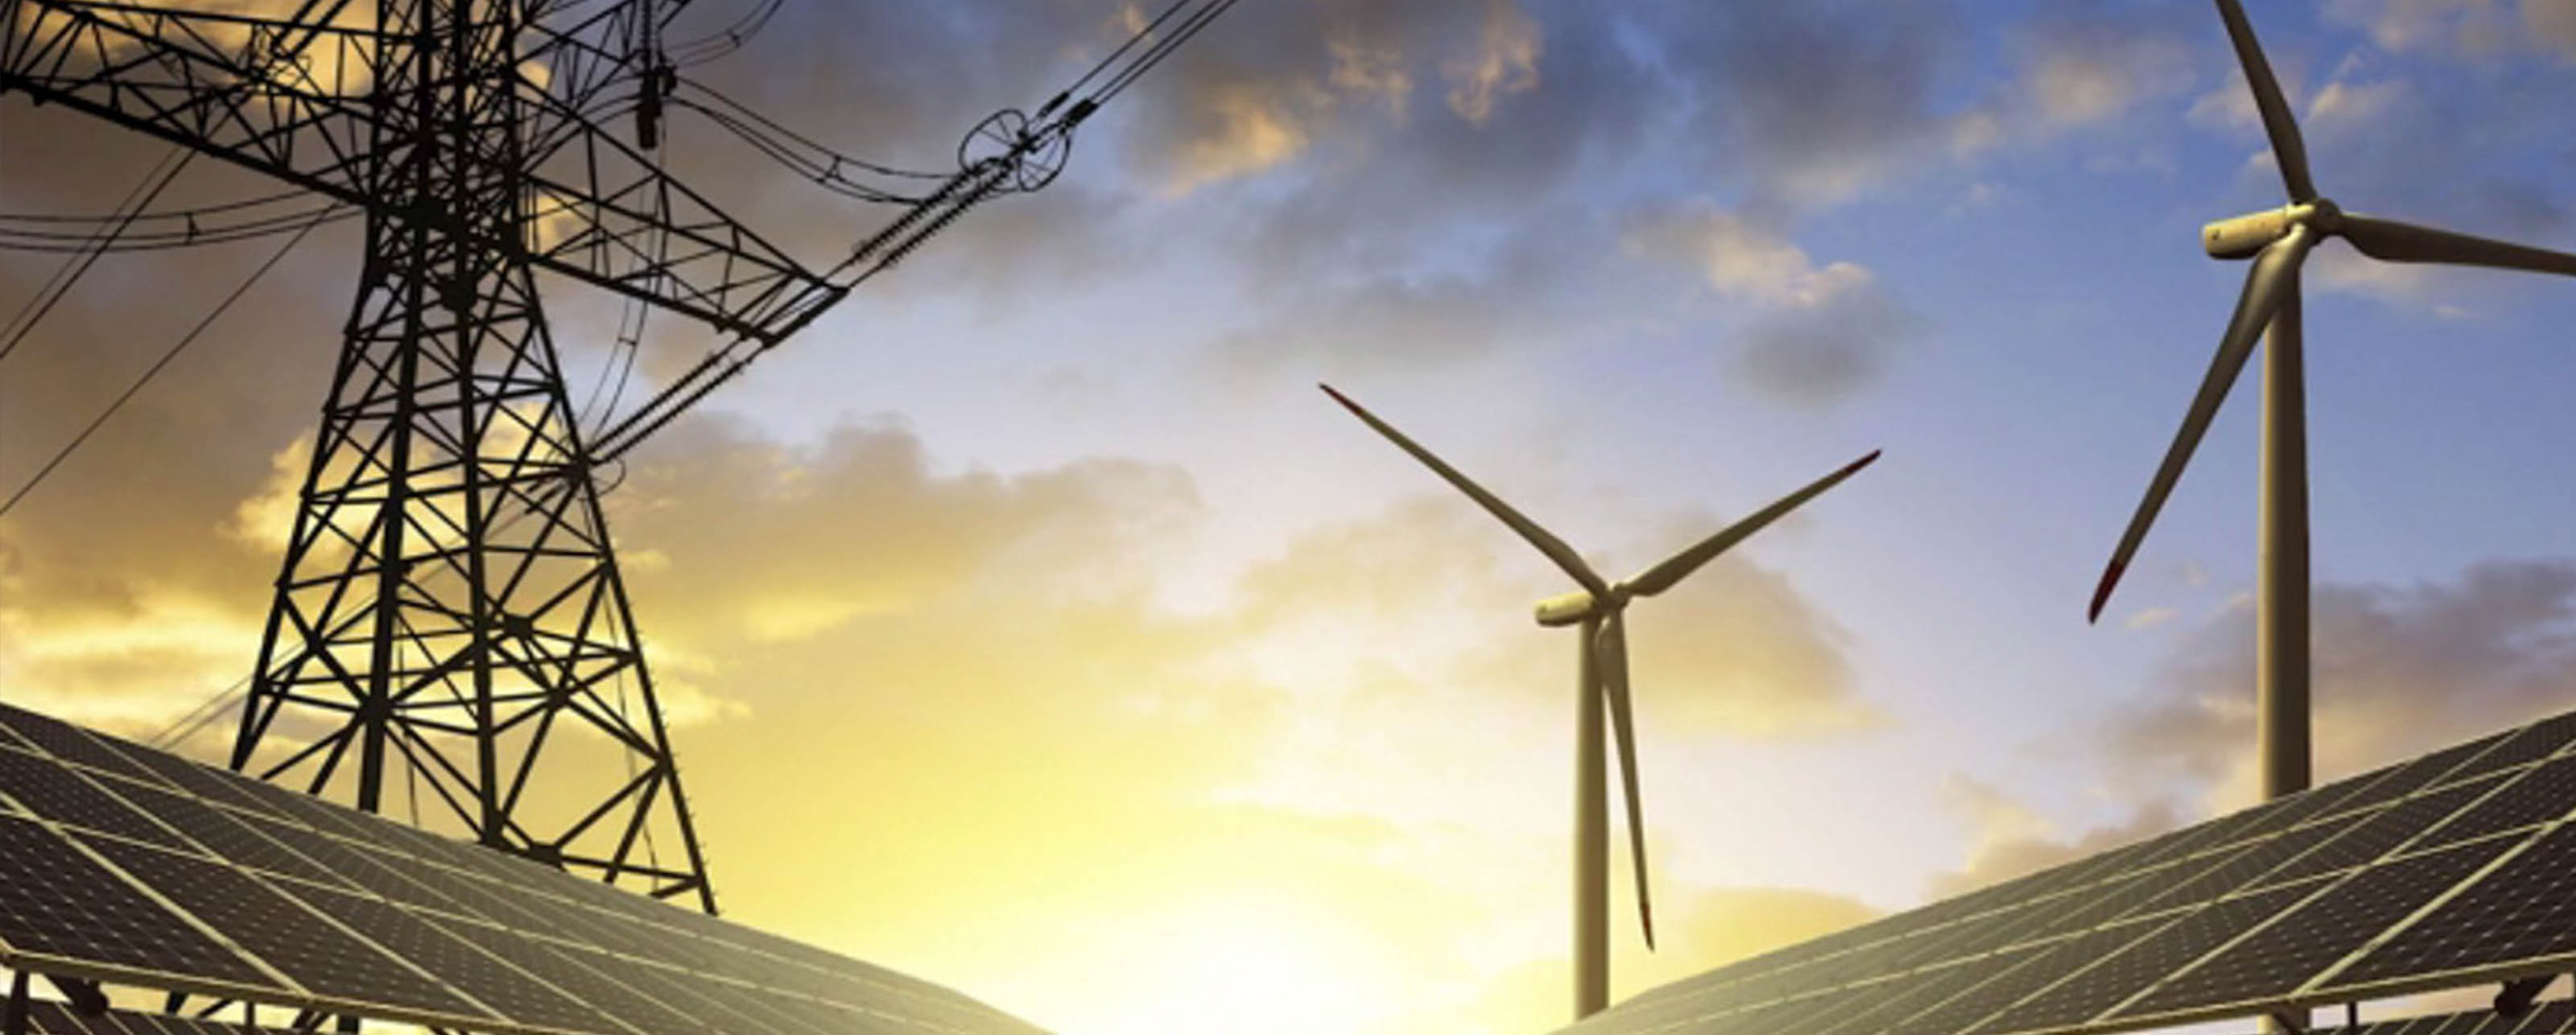 Distributed Energy Resources | DER Orchestration | GE Digital